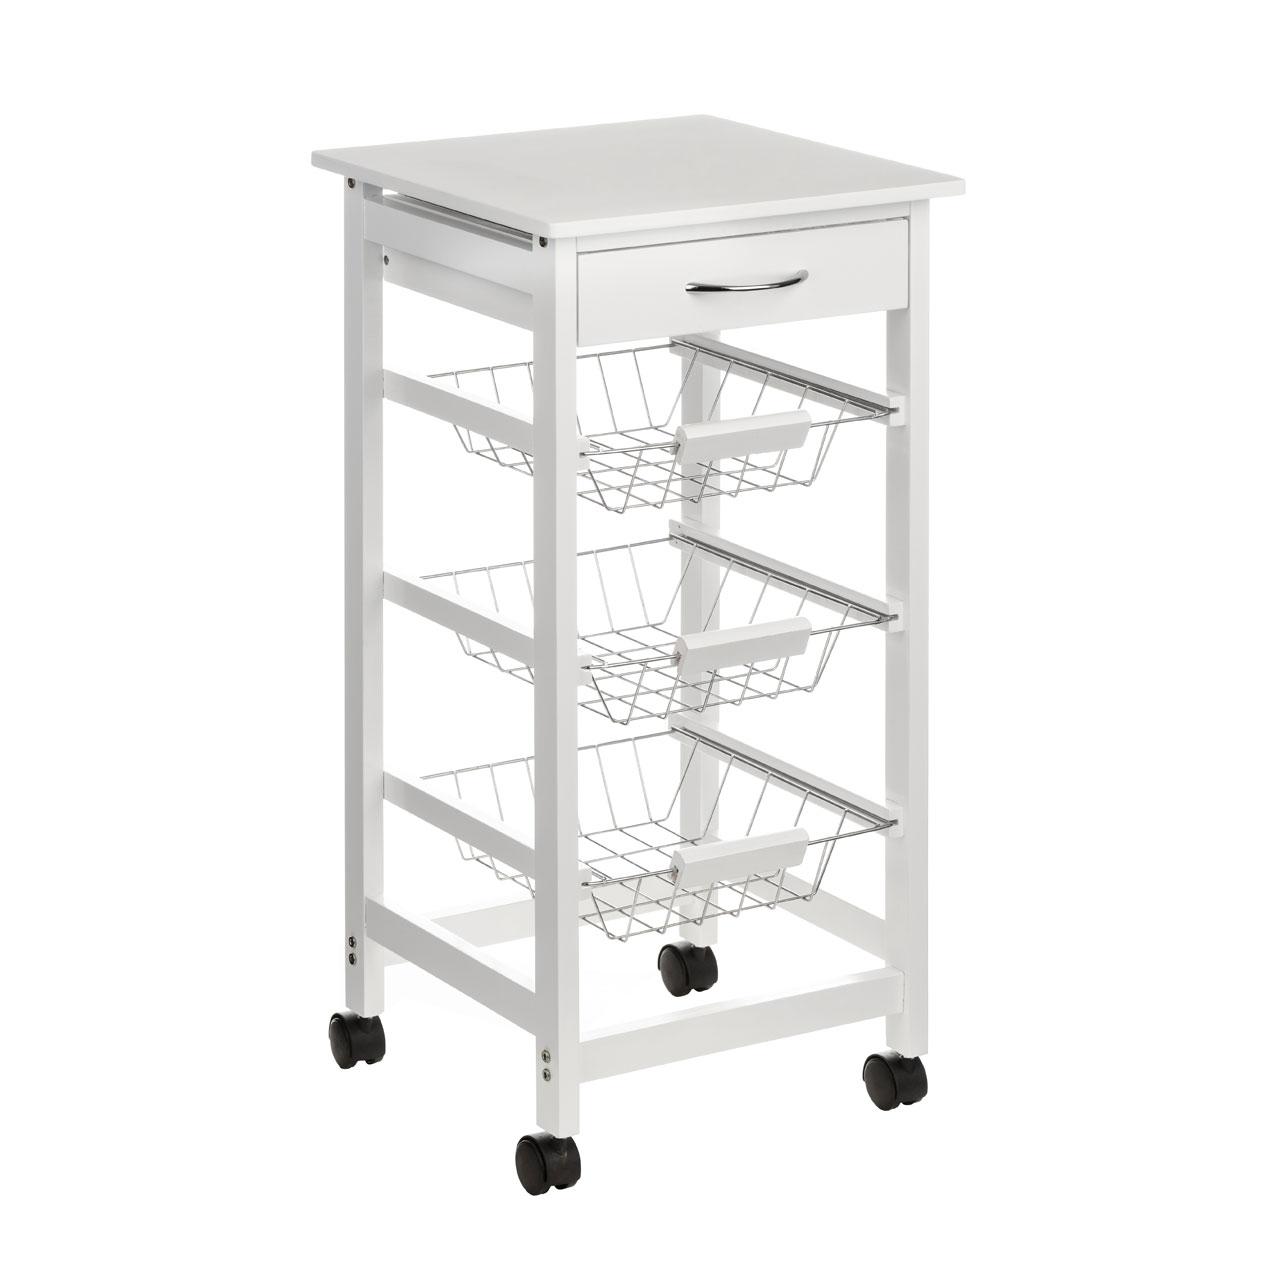 White Kitchen Trolley 3 tier trays 1 drawer moveable white pine wood kitchen trolley